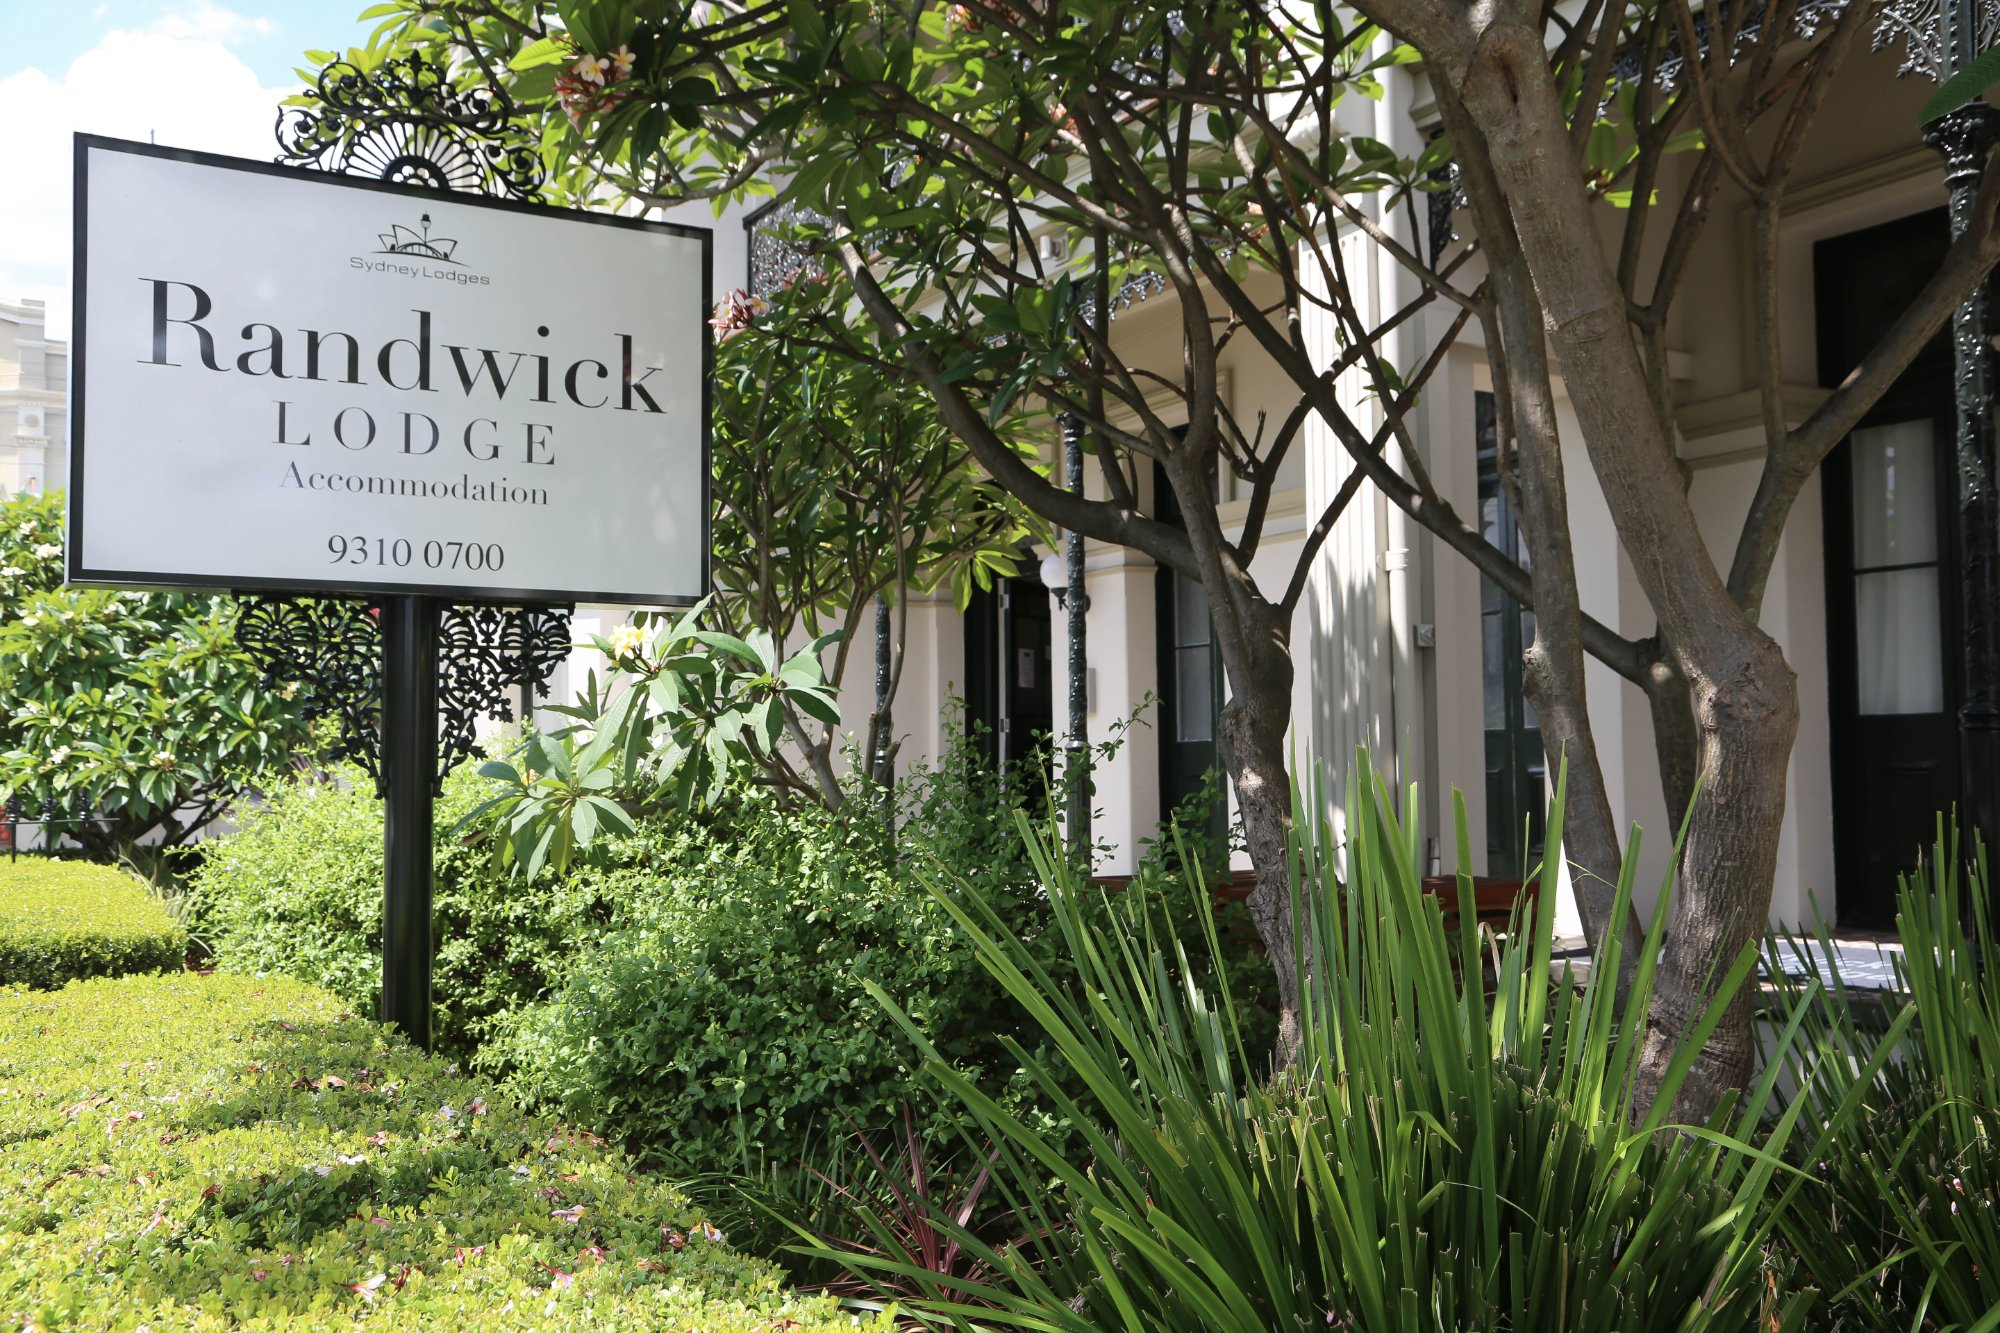 Randwick Lodge